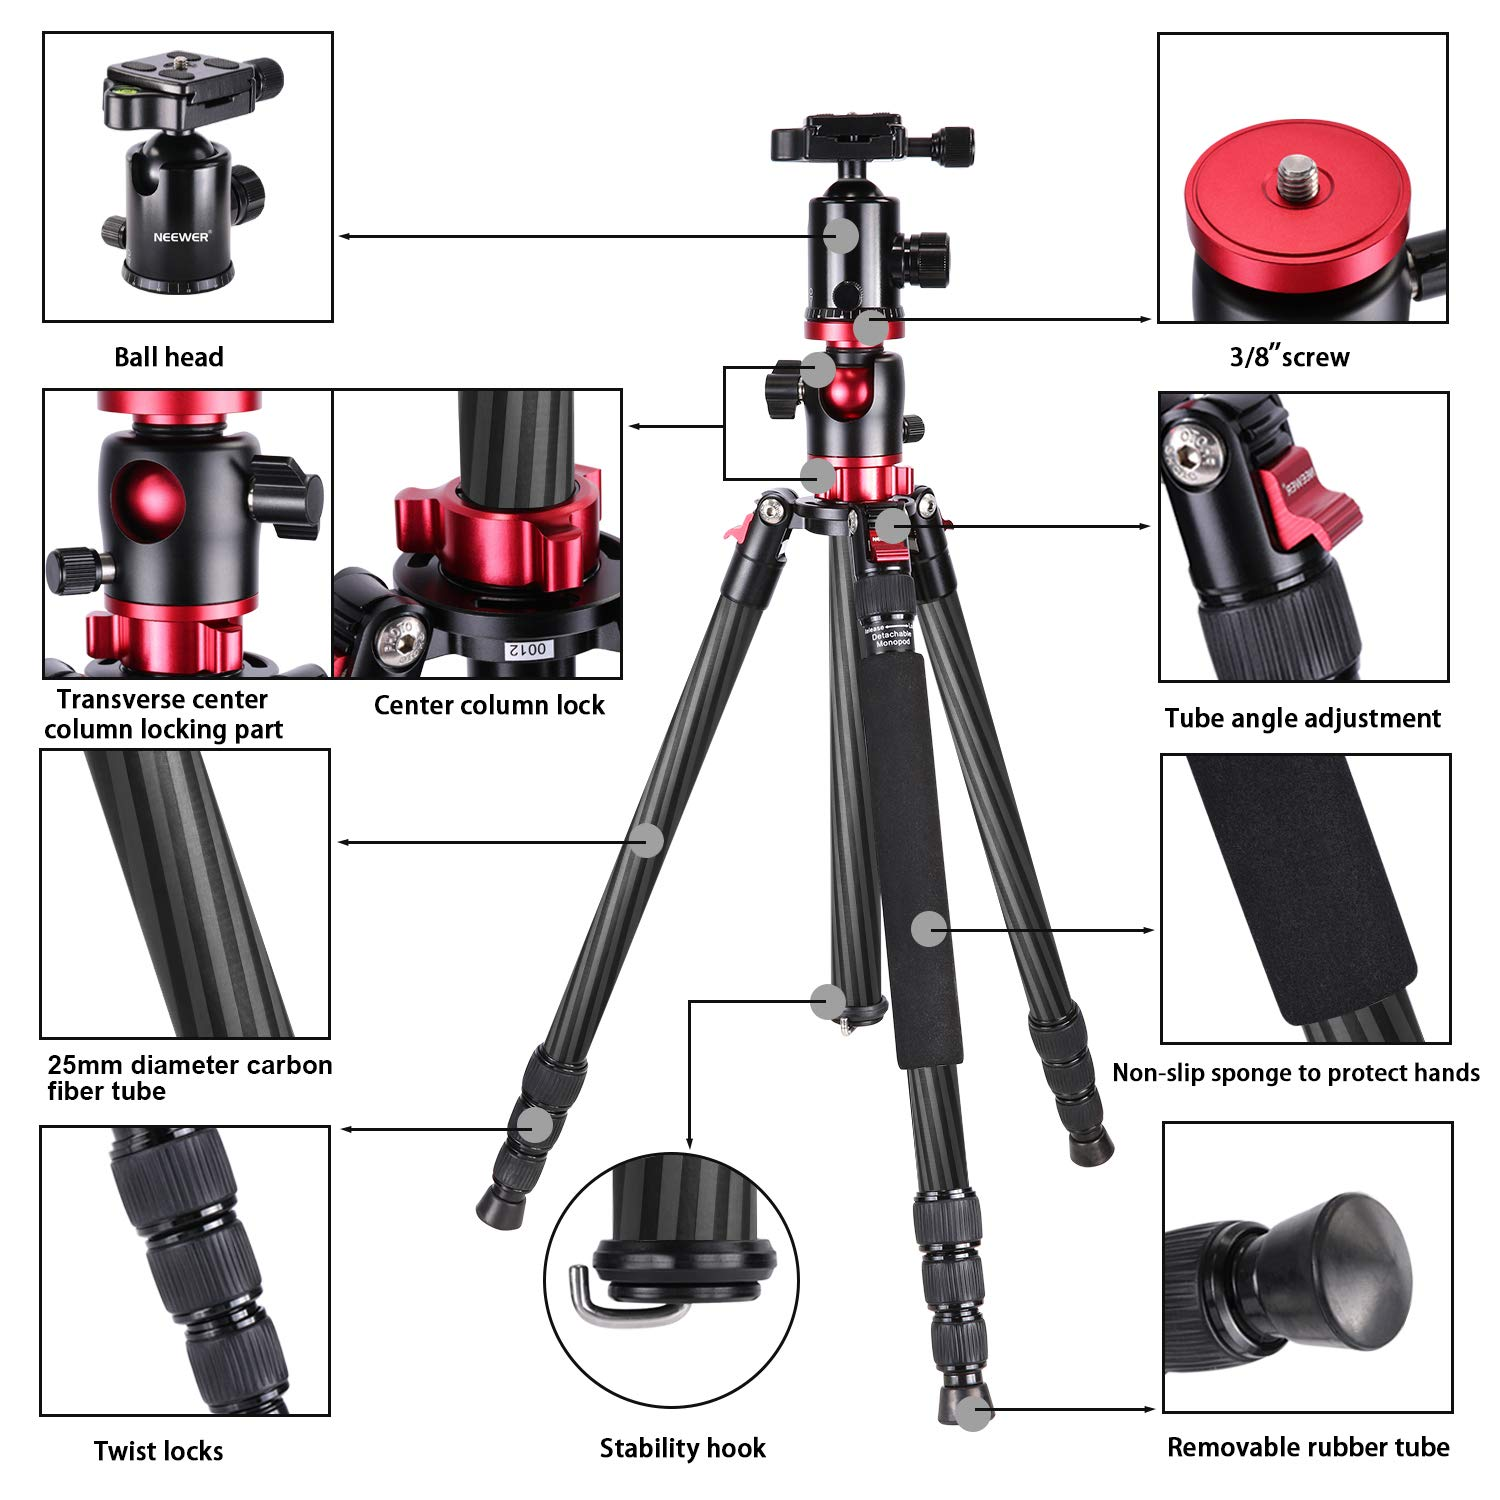 Neewer Camera Tripod Monopod Carbon Fiber with Rotatable Center Column - Portable Lightweight, 75 inches/191 Centimeters, 360 Degree Ball Head for DSLR Camera Camcorder up to 26.5 pounds by Neewer (Image #3)